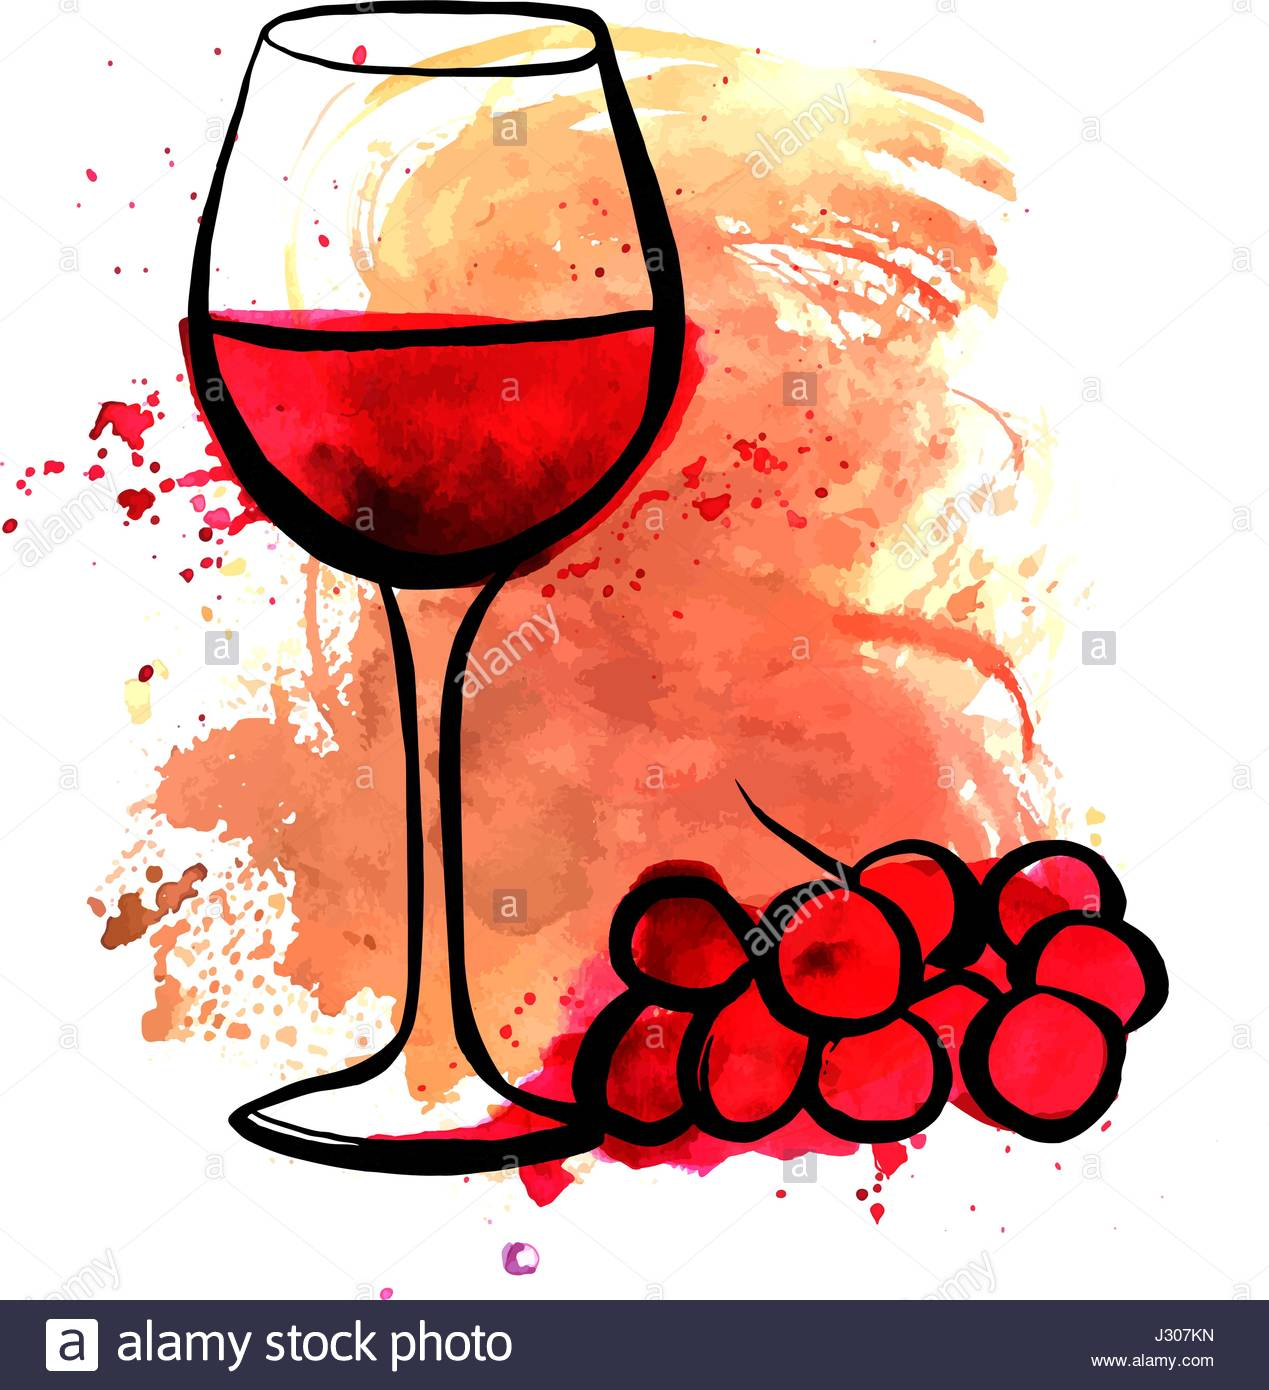 Glass of wine drawing at free for for How to draw on wine glasses